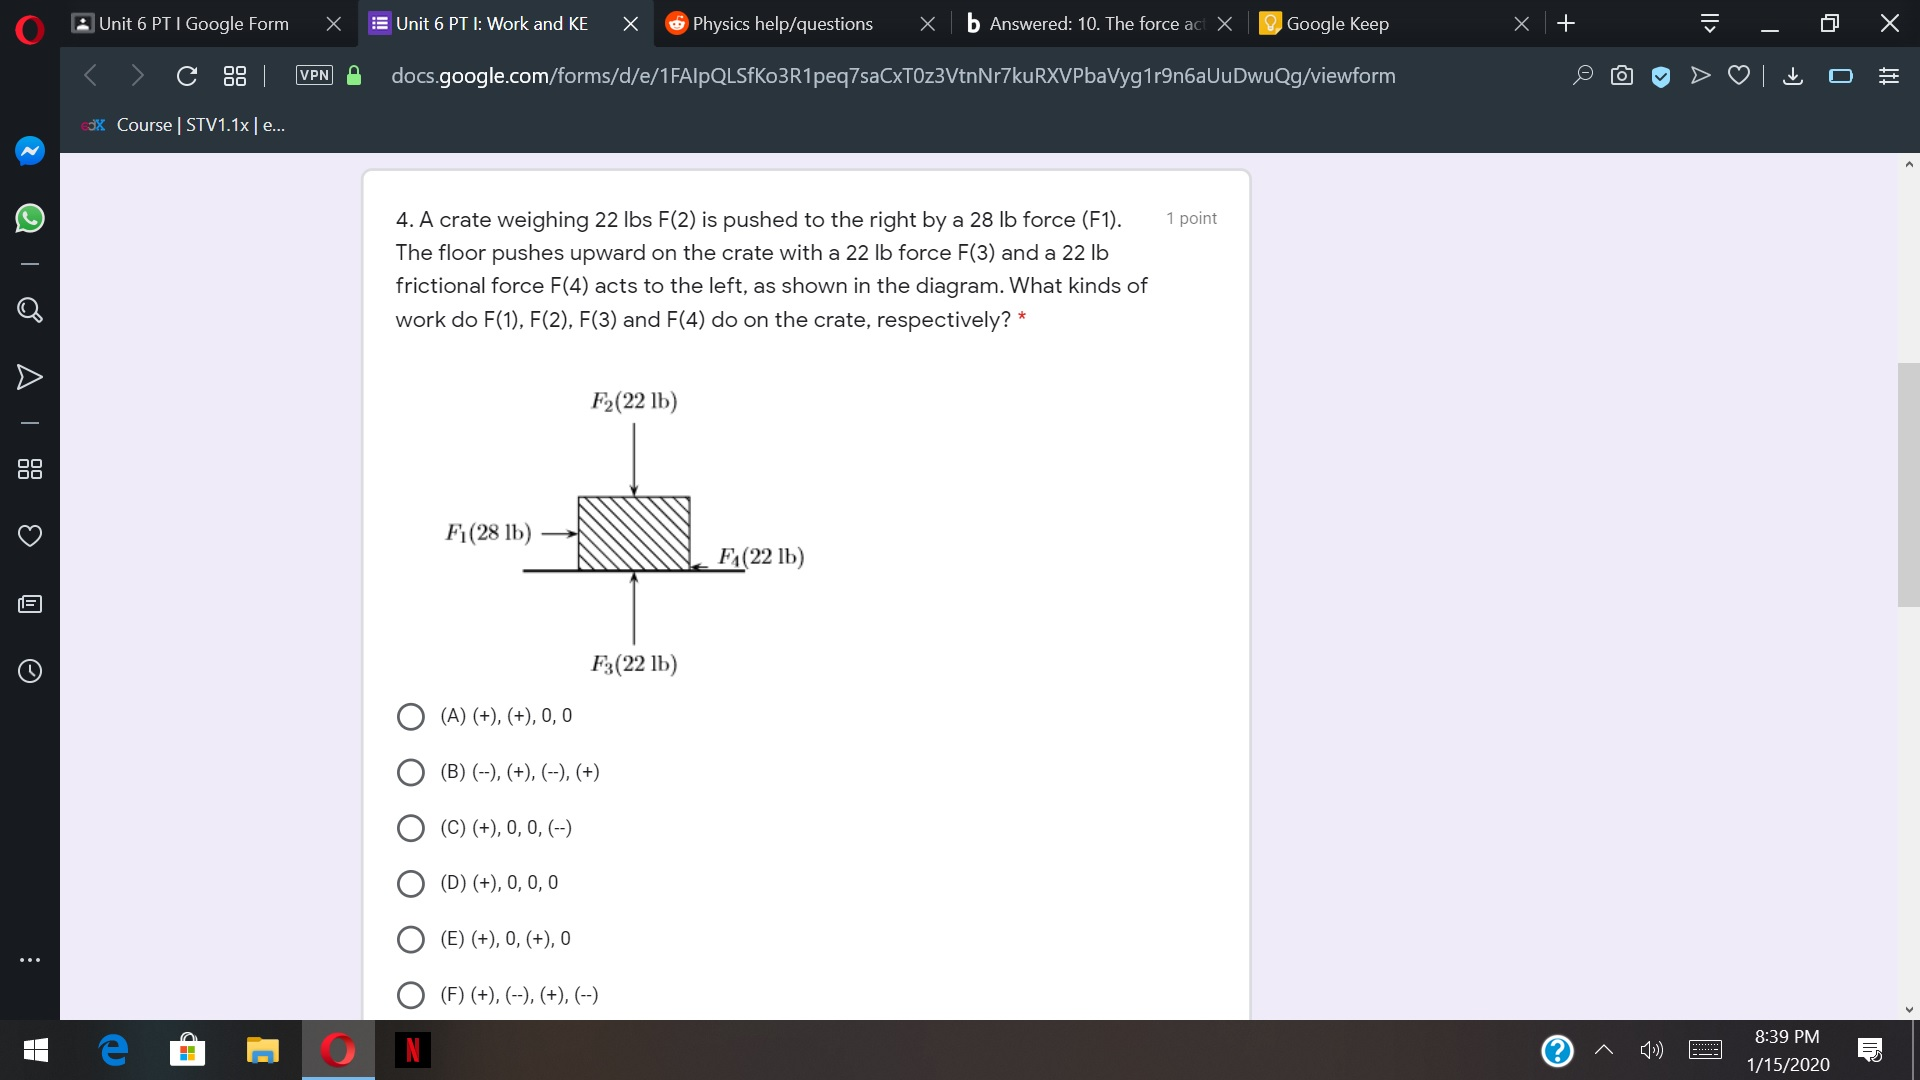 6 Physics help/questions O Google Keep E Unit 6 PT I: Work and KE b Answered: 10. The force act X AUnit 6 PT I Google Form C 88 | VPN docs.google.com/forms/d/e/1FAlpQLSFKo3R1peq7saCxTOz3VtnNr7kuRXVPbaVyg1r9n6aUuDwuQg/viewform 3X Course | STV1.1x|e.. 4. A crate weighing 22 lbs F(2) is pushed to the right by a 28 lb force (F1). The floor pushes upward on the crate with a 22 lb force F(3) and a 22 lb frictional force F(4) acts to the left, as shown in the diagram. What kinds of 1 point work do F(1), F(2), F(3) and F(4) do on the crate, respectively? * F2(22 lb) F1(28 lb) F<(22 lb) F3(22 lb) (A) (+), (+), 0, 0 (B) (-), (+), (--), (+) (C) (+), 0, 0, (--) (D) (+), 0, 0, 0 (E) (+), 0, (+), 0 (F) (+), (--), (+), (--) 8:39 PM 1») 1/15/2020 ||>